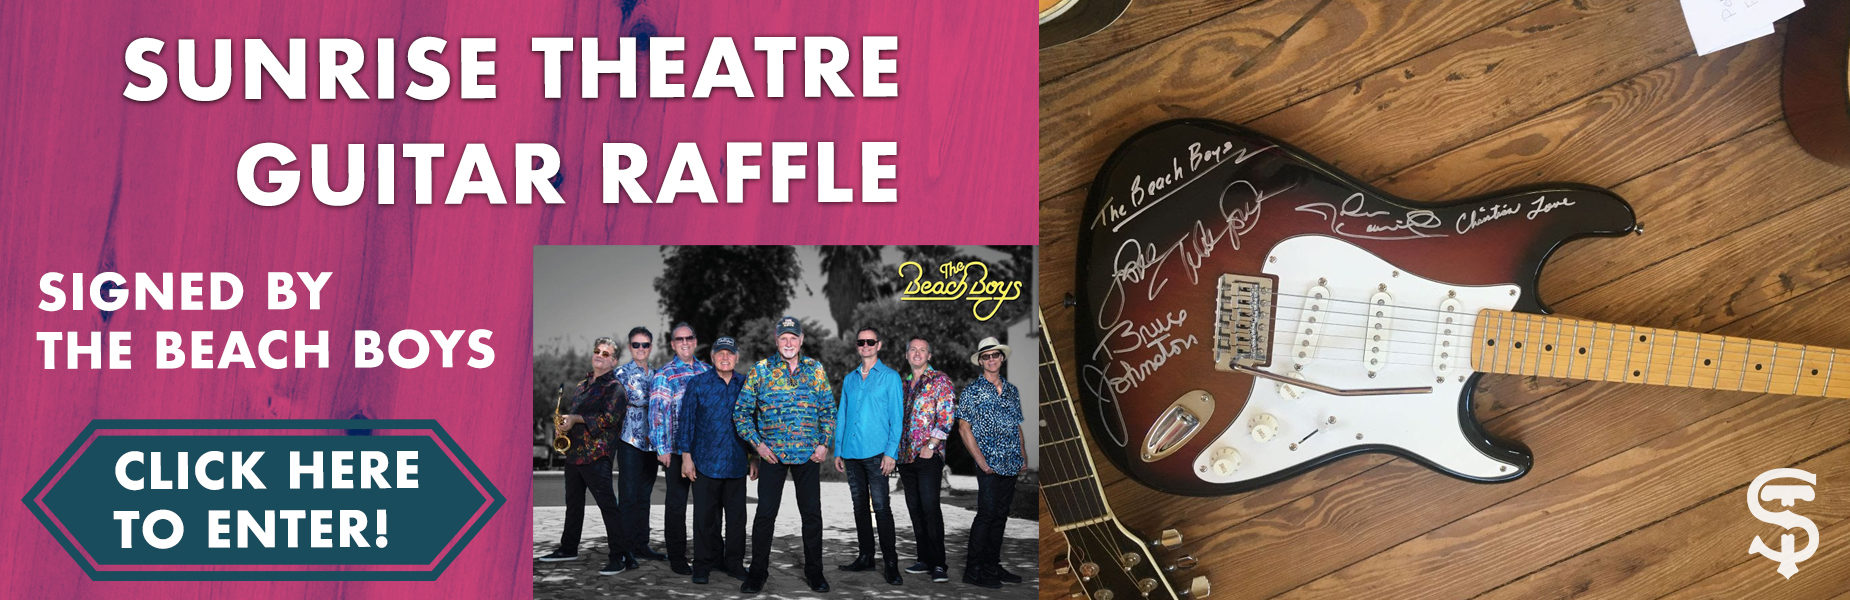 Win A Guitar Signed By The Beach Boys! Click The Image To Enter!